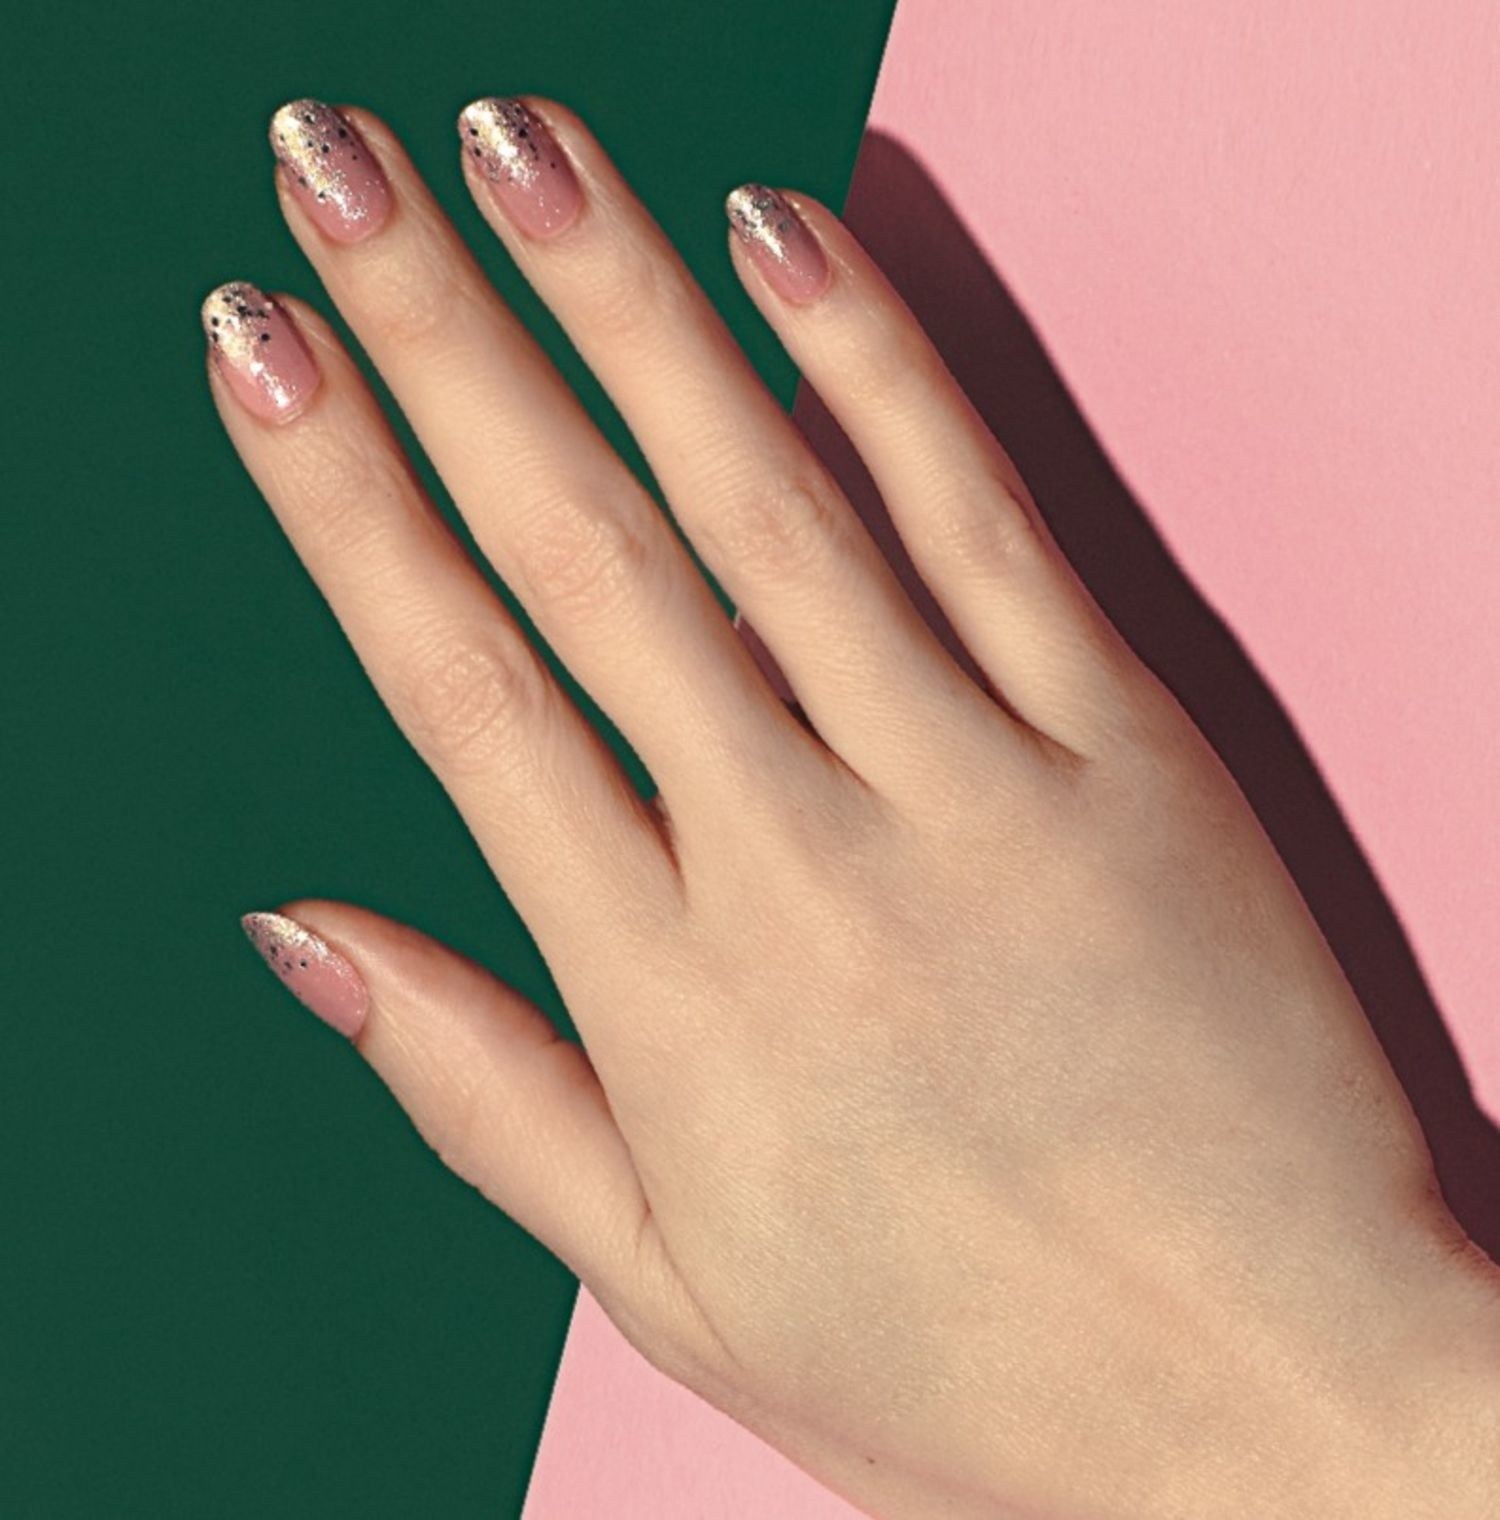 15 Wedding Nail Designs For the Bride